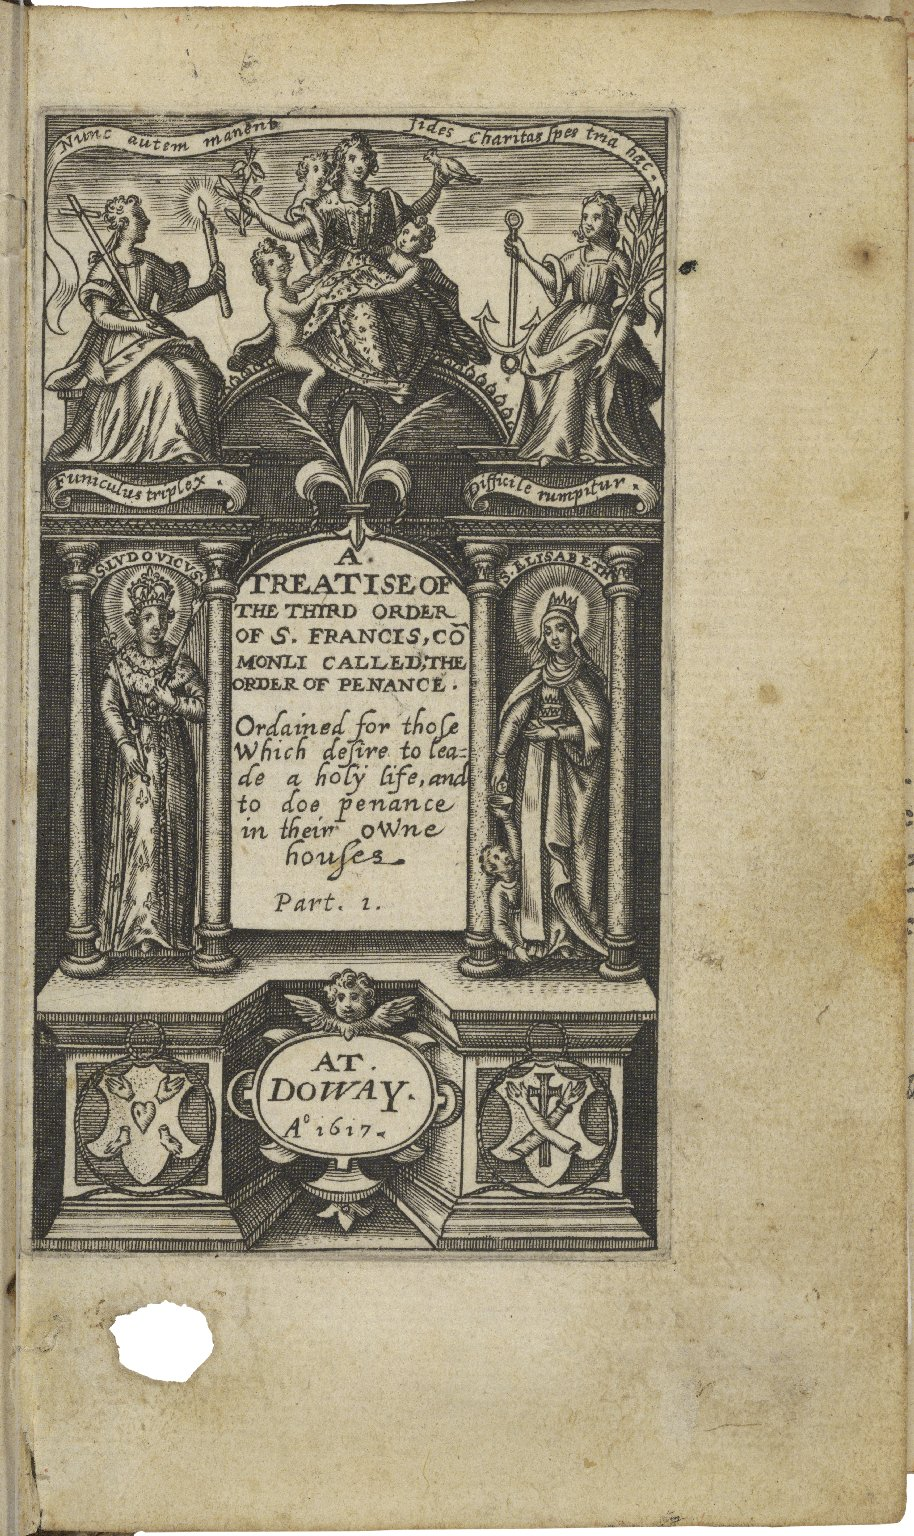 A treatise of penance, vvith an explication of the rule, and maner of liuing, of the brethren and sisters, of the third order of S. Frauncis; commonly called, of the order of penance, ordayned for those which desire to liue holilie. [sic] and doe penance